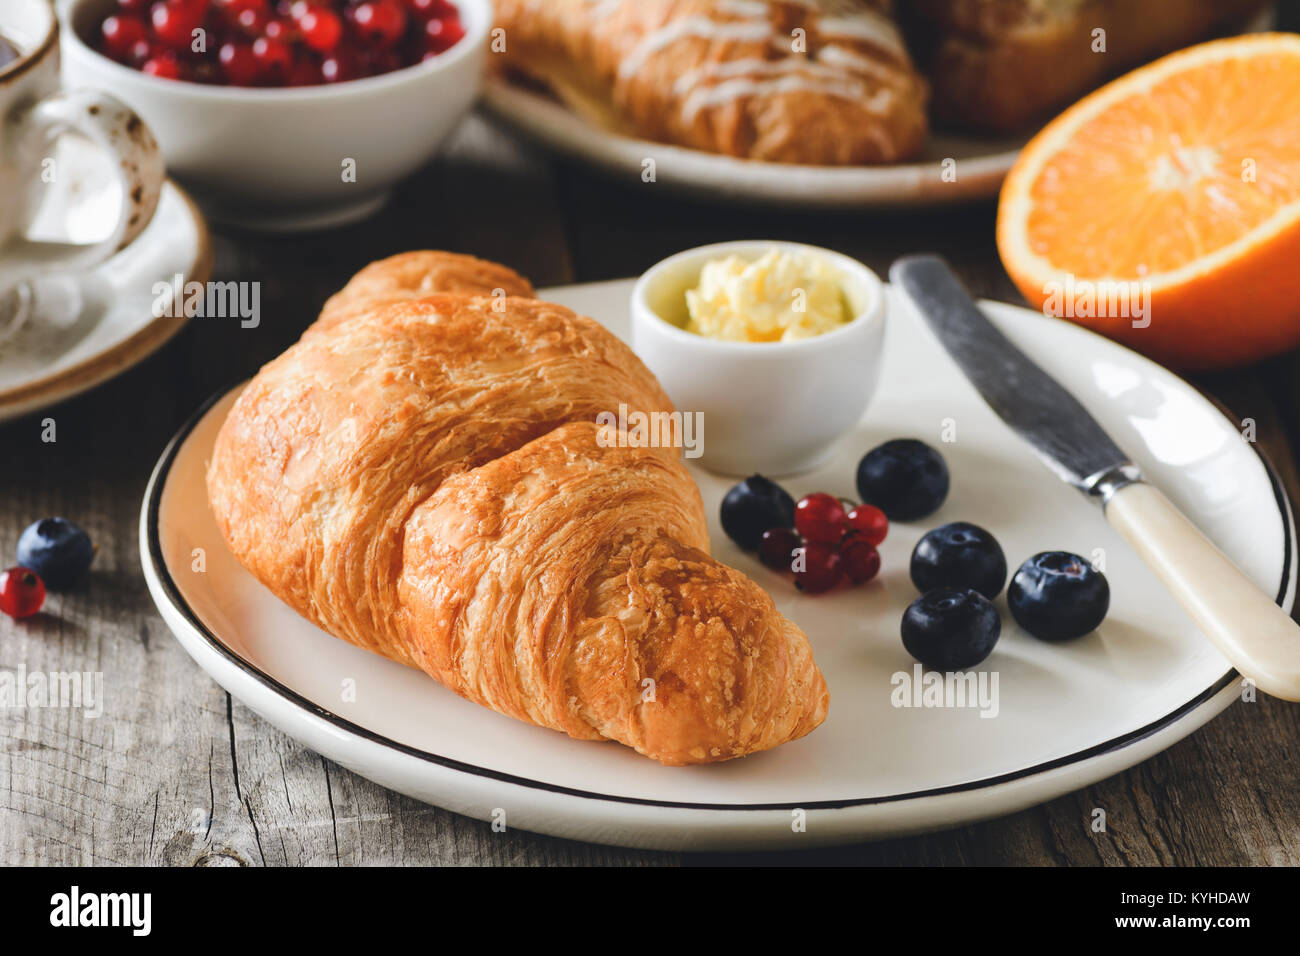 Croissant with fresh berries and butter. Coffee, berries and fruits on background. Concept of continental breakfast. - Stock Image